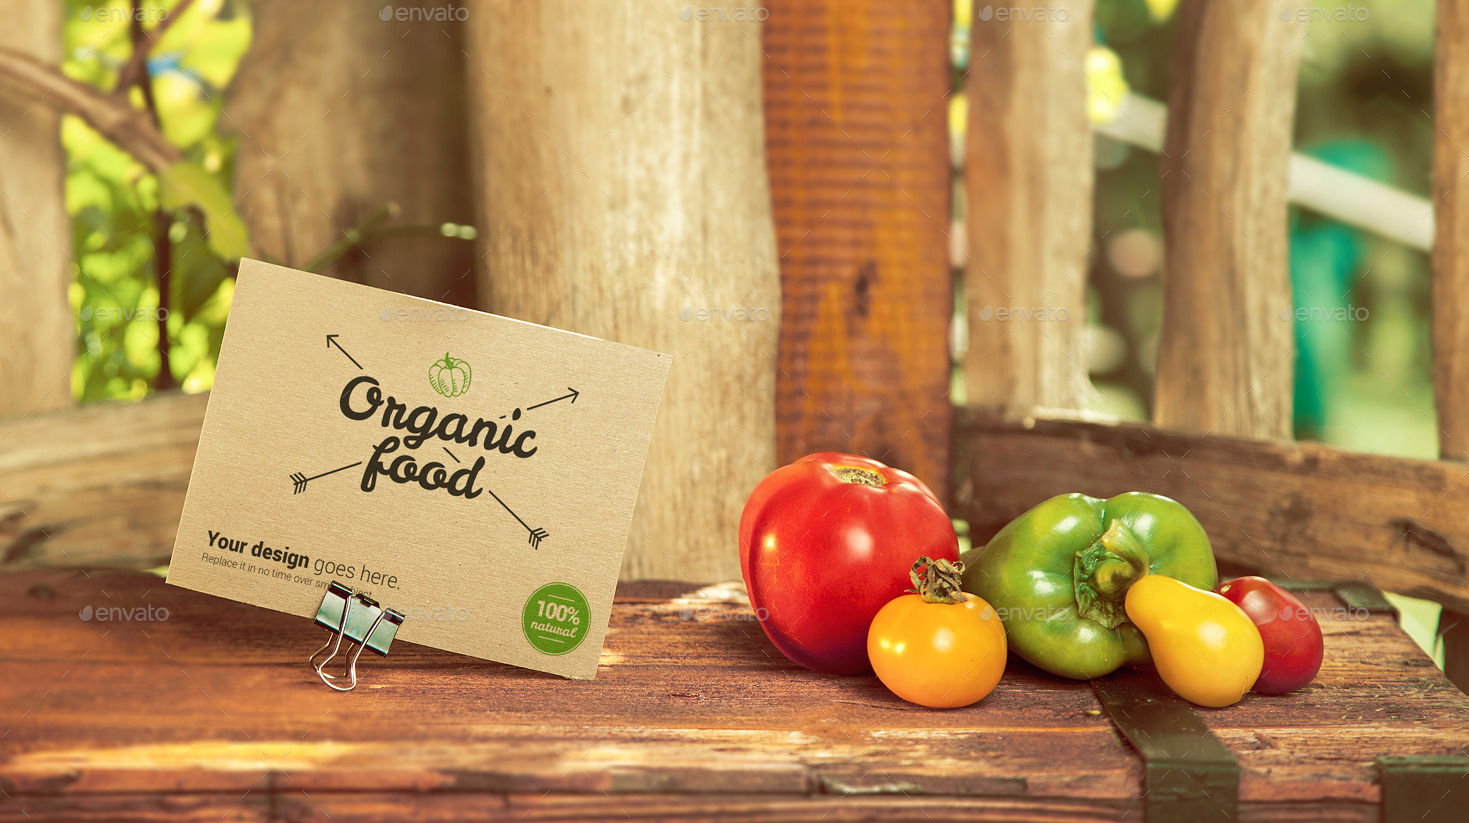 ​Future Consumer Limited partners with Hain Celestial Group Inc. to bring Better-For-You organic products to Indian market